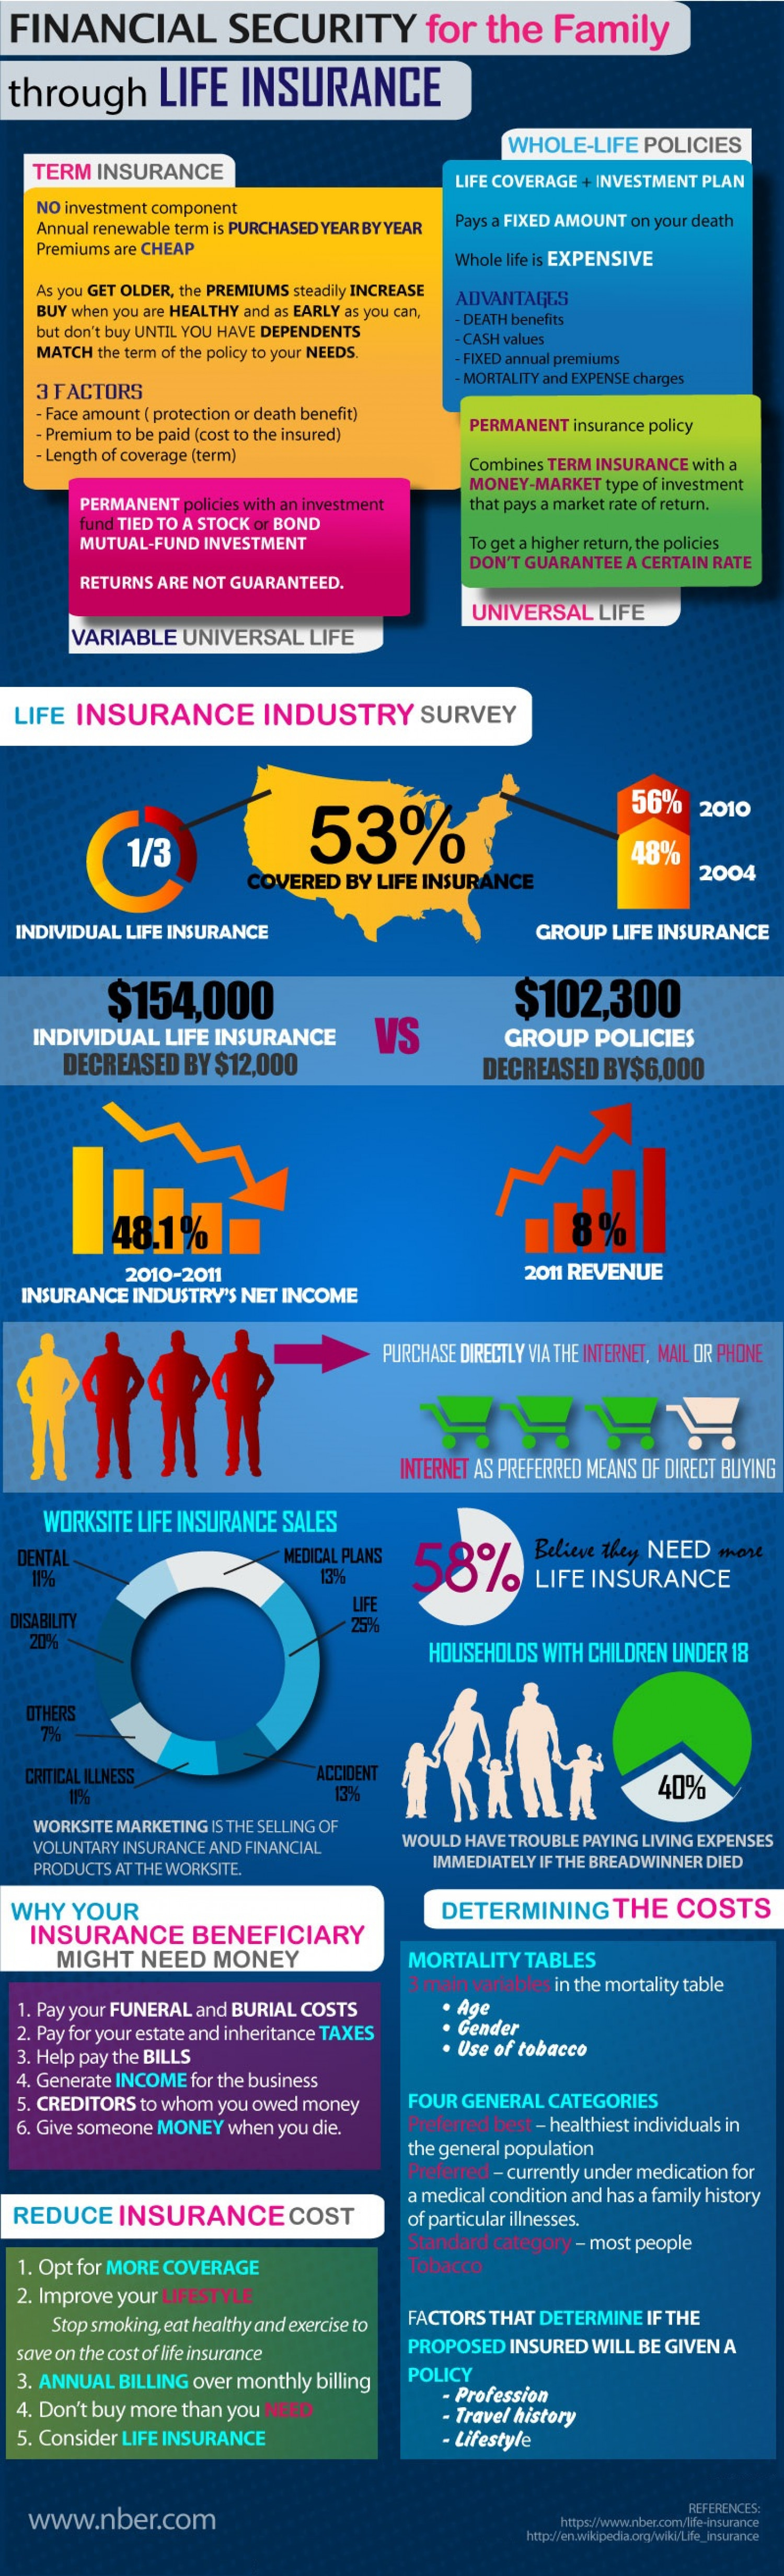 Financial Security for the Family through Life Insurance Infographic